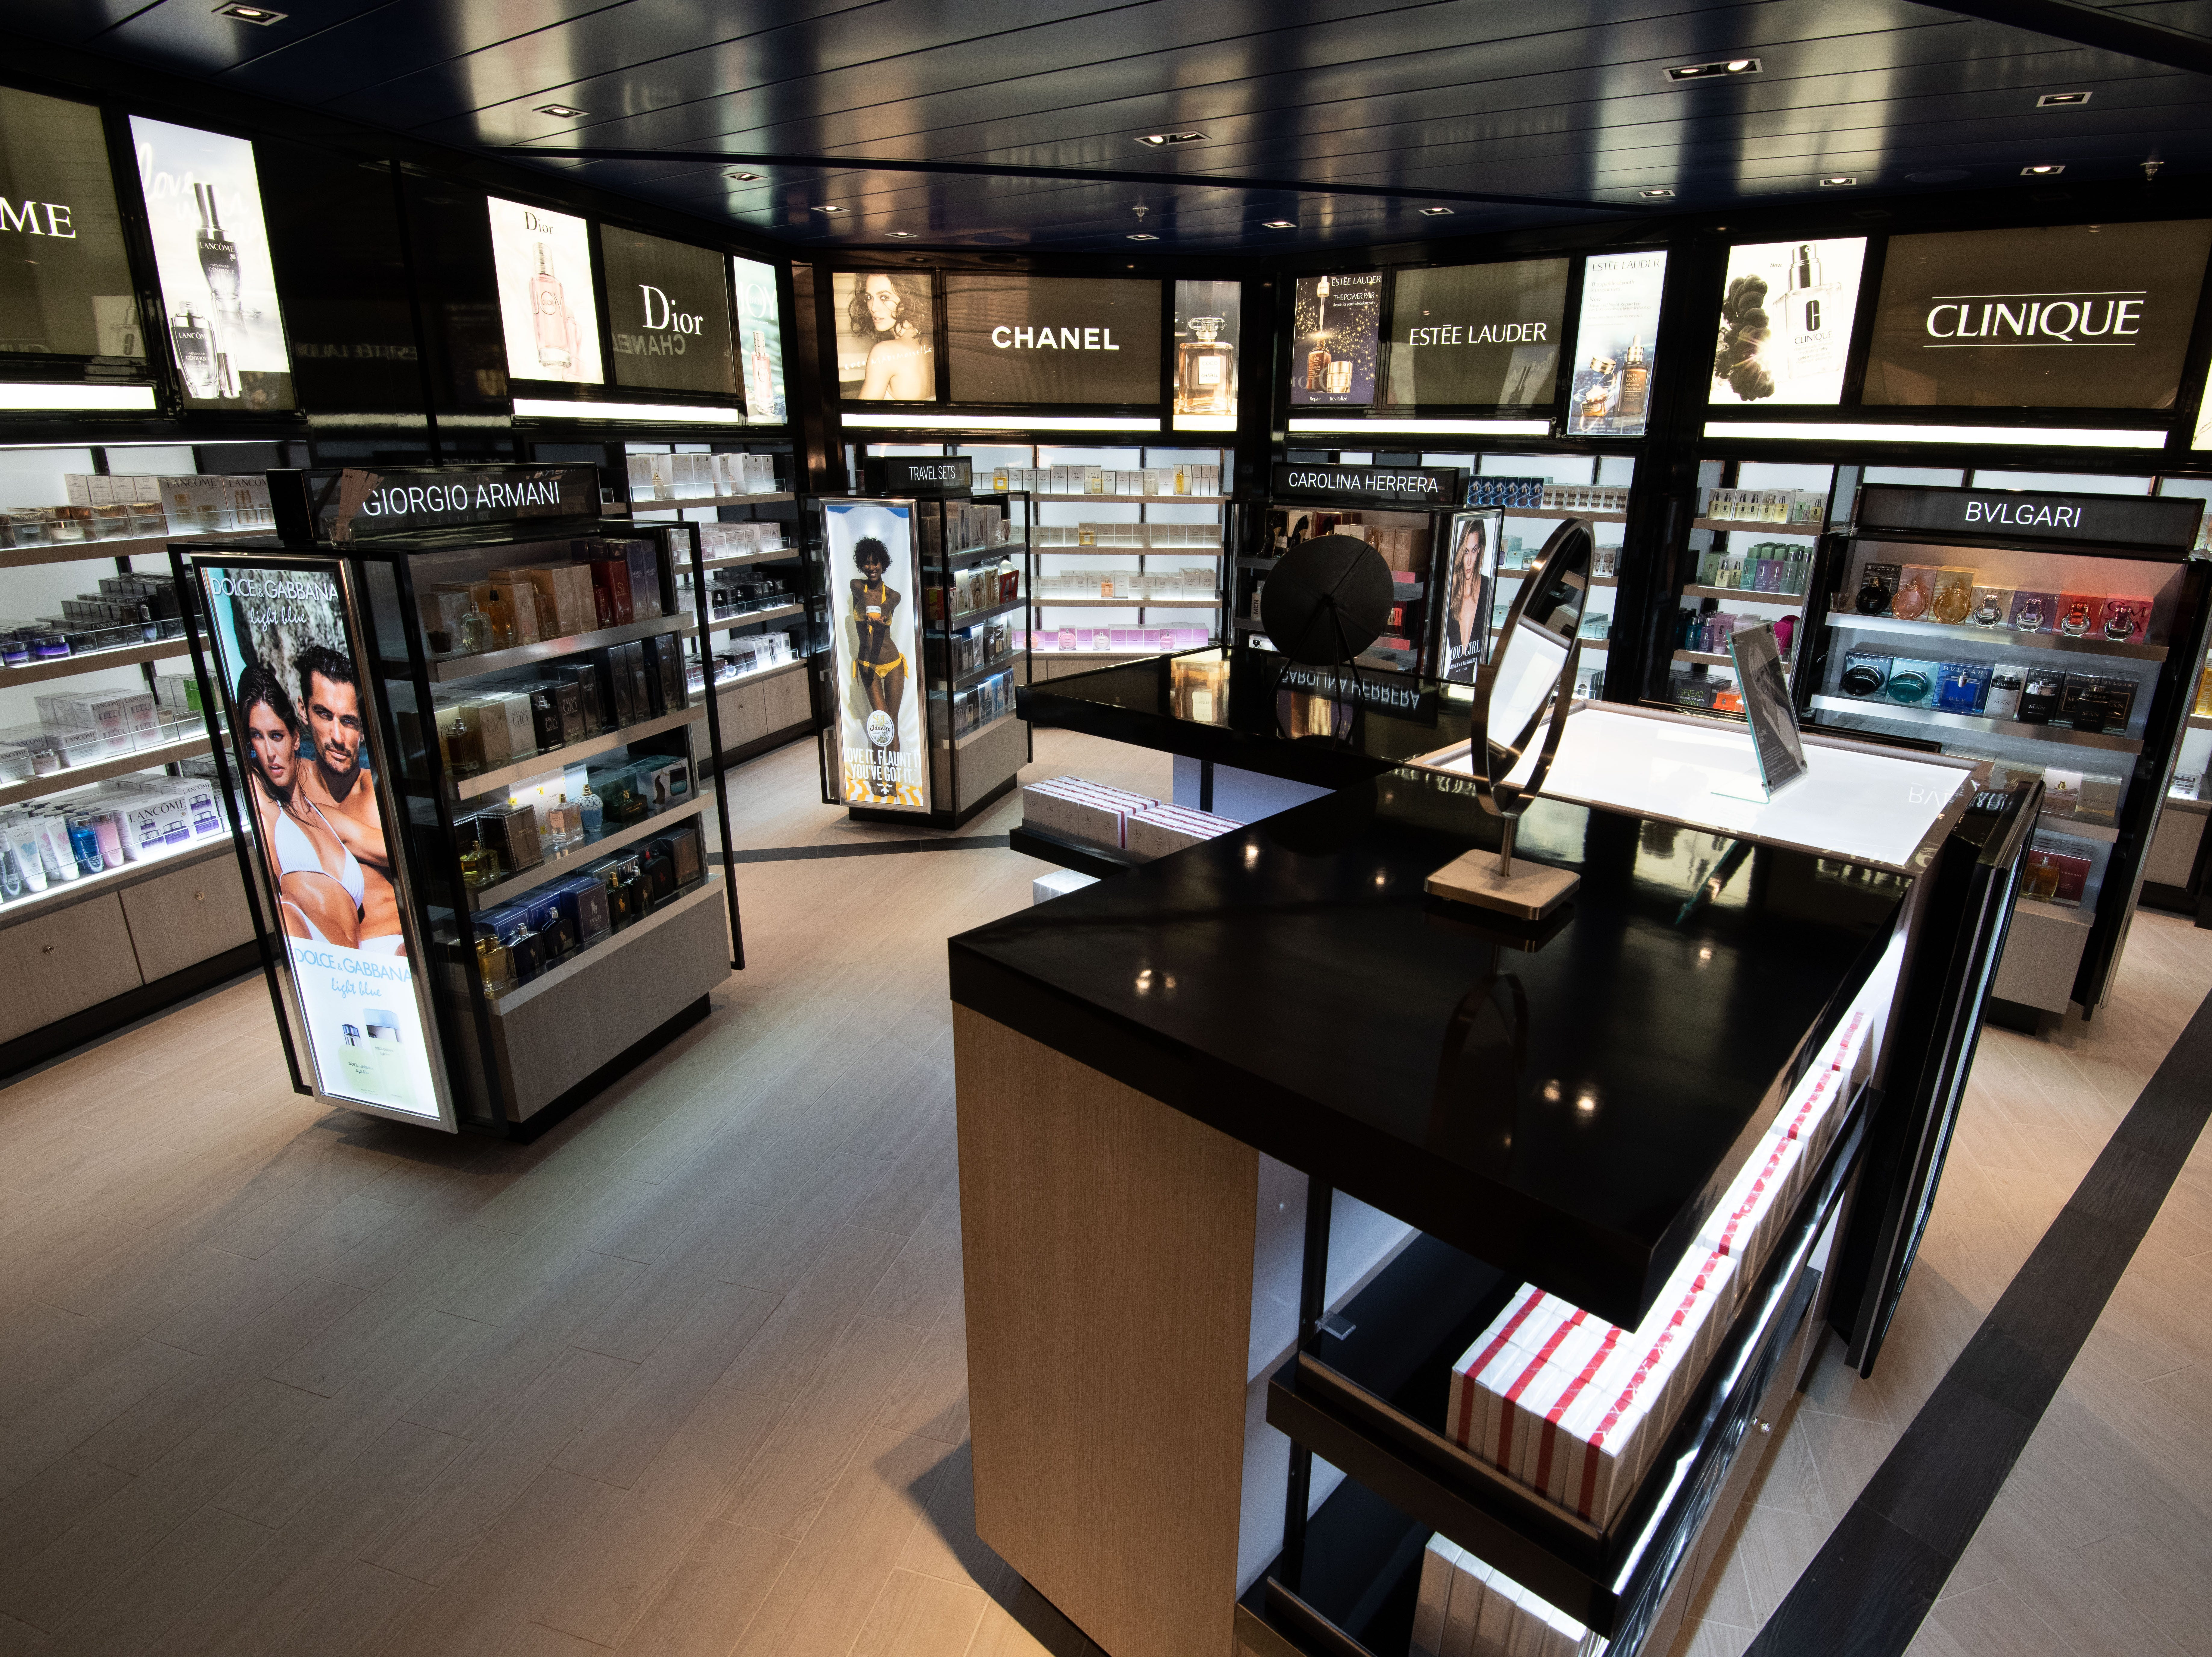 Chanel, Clinique and Estee Lauder are among the brands available in the shops on Celebrity Edge.